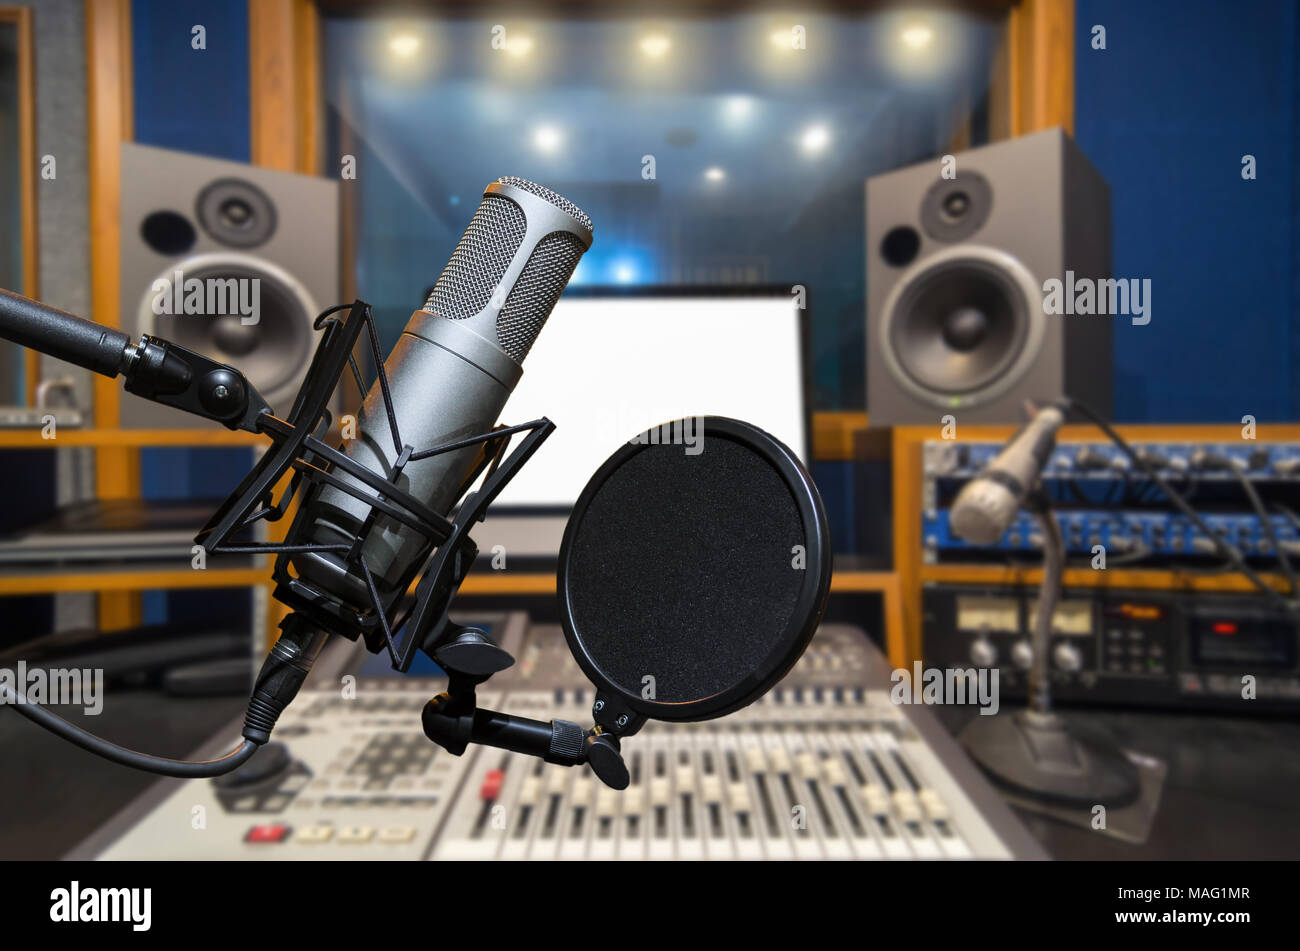 Hd images music studio background